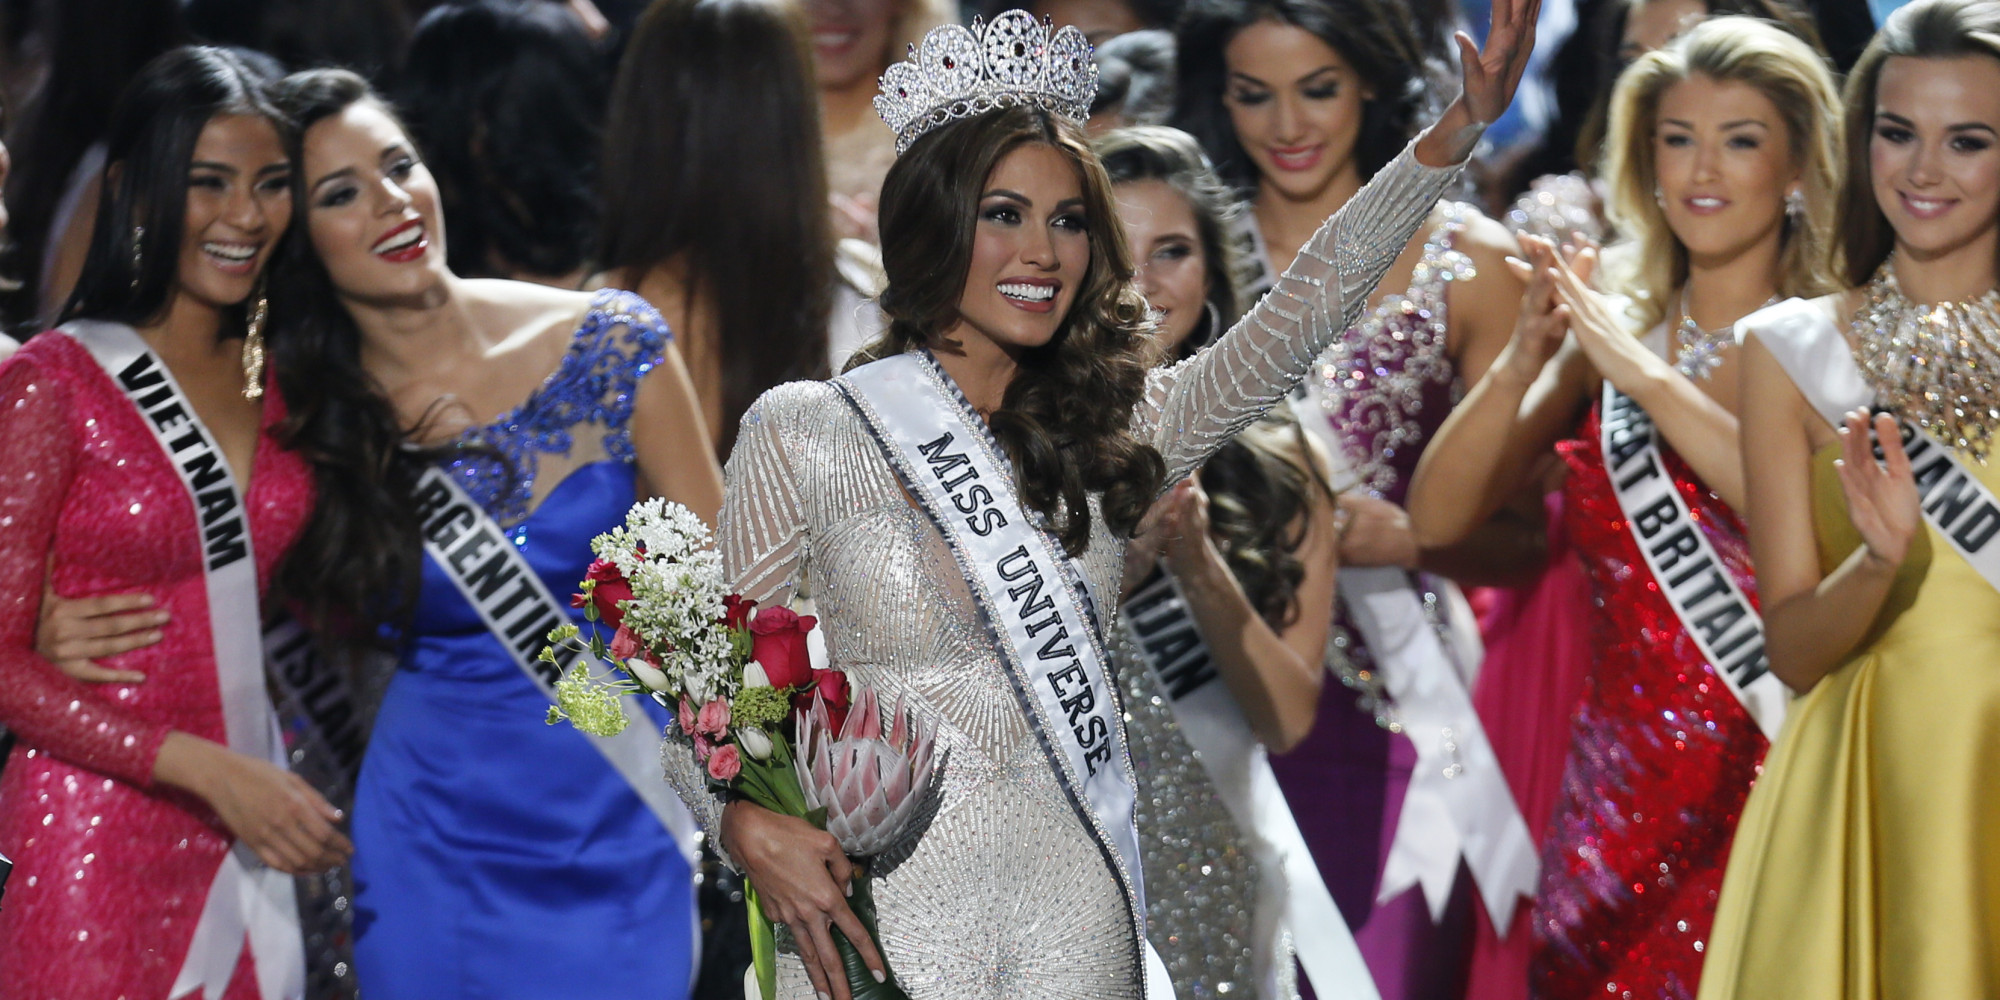 Shes beauty and shes  grace? Miss Universe 2013